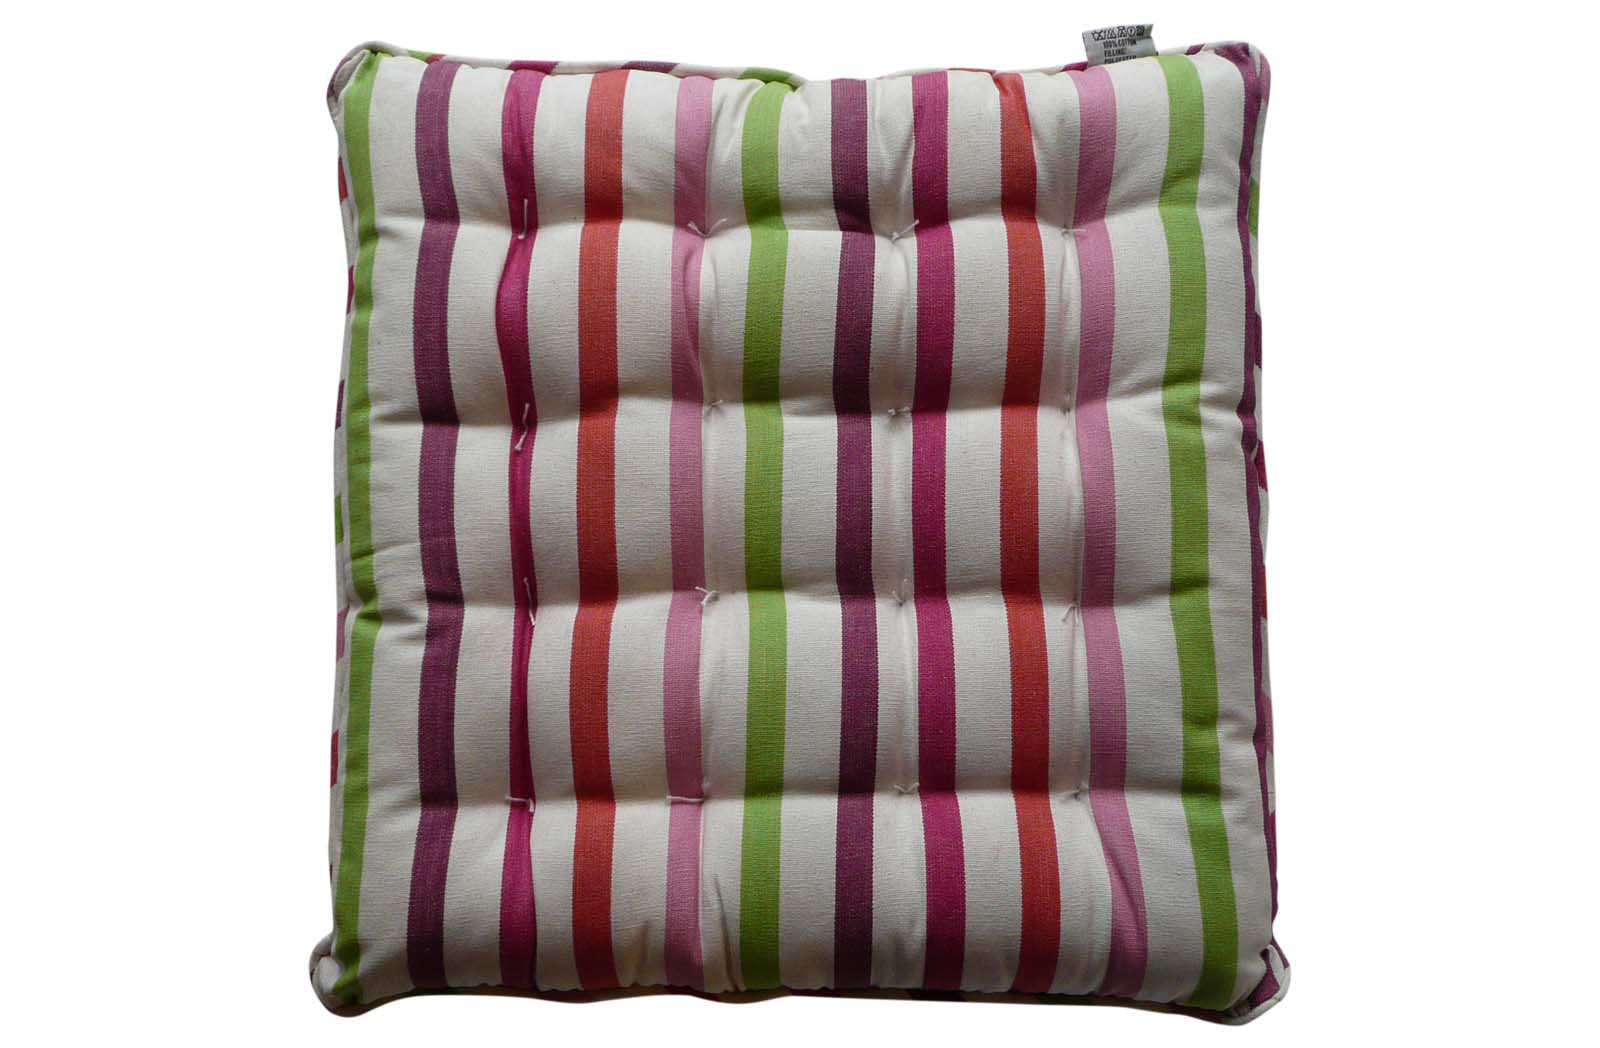 Striped Seat Pads with Piping White Pink Purple